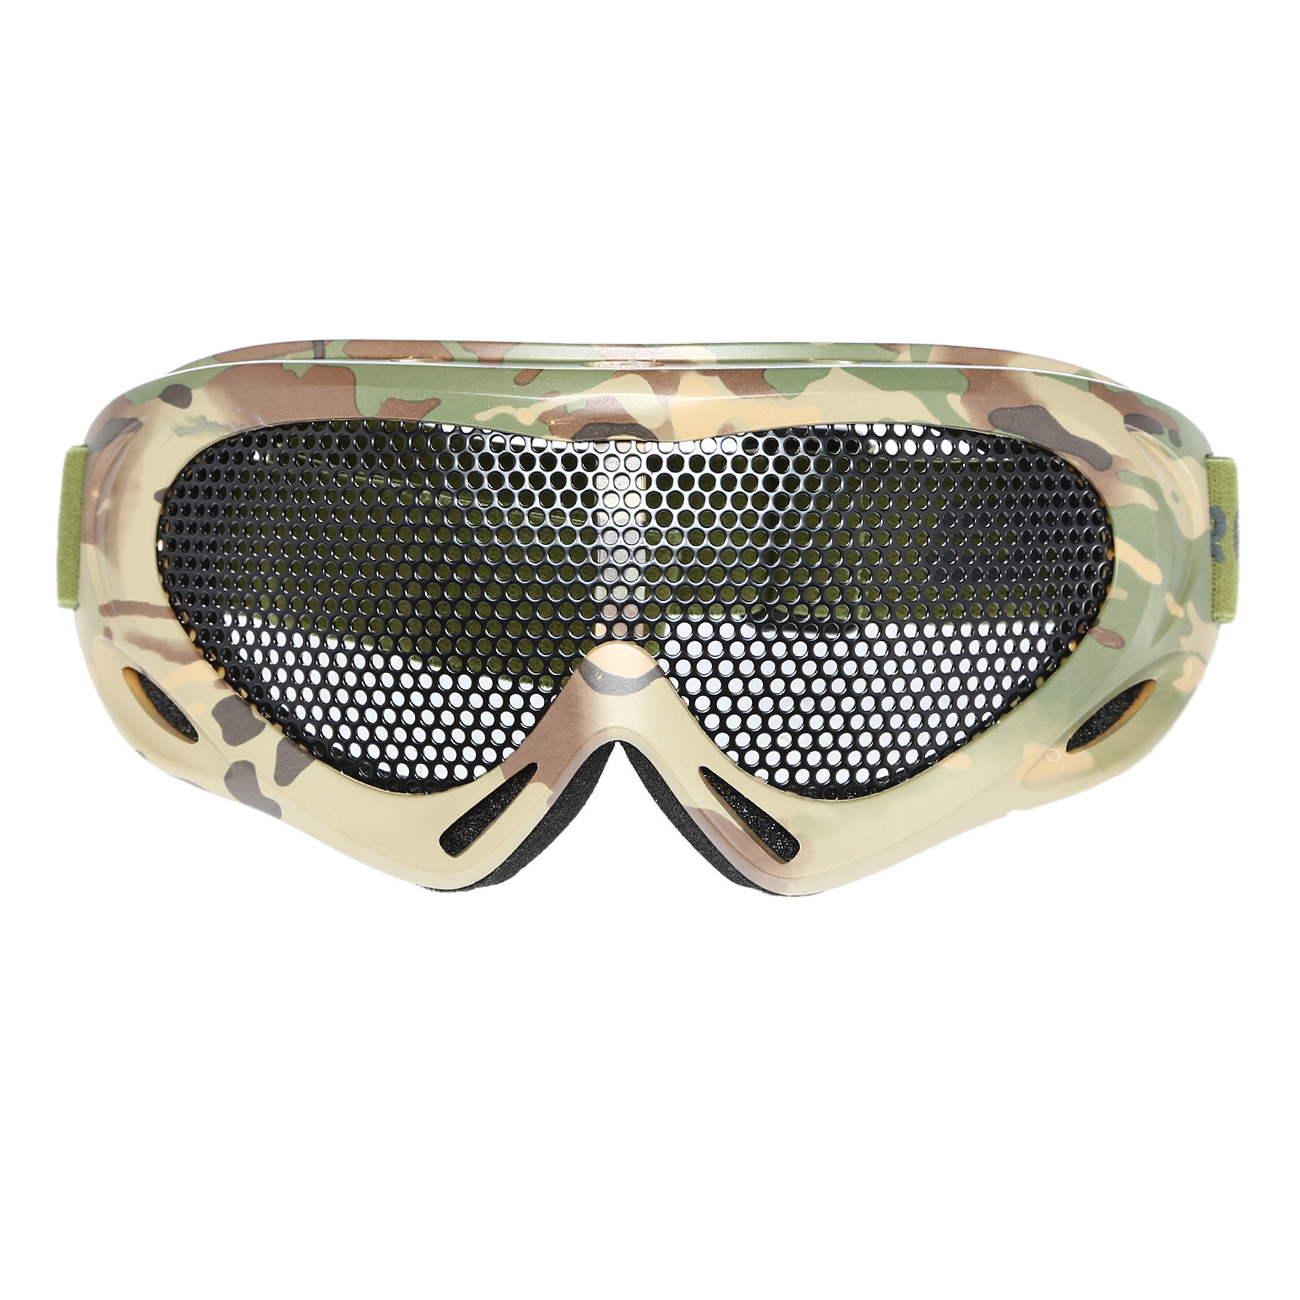 Nuprol Brille Pro Mesh Eye Protection Airsoft Gitterbrille camo 1